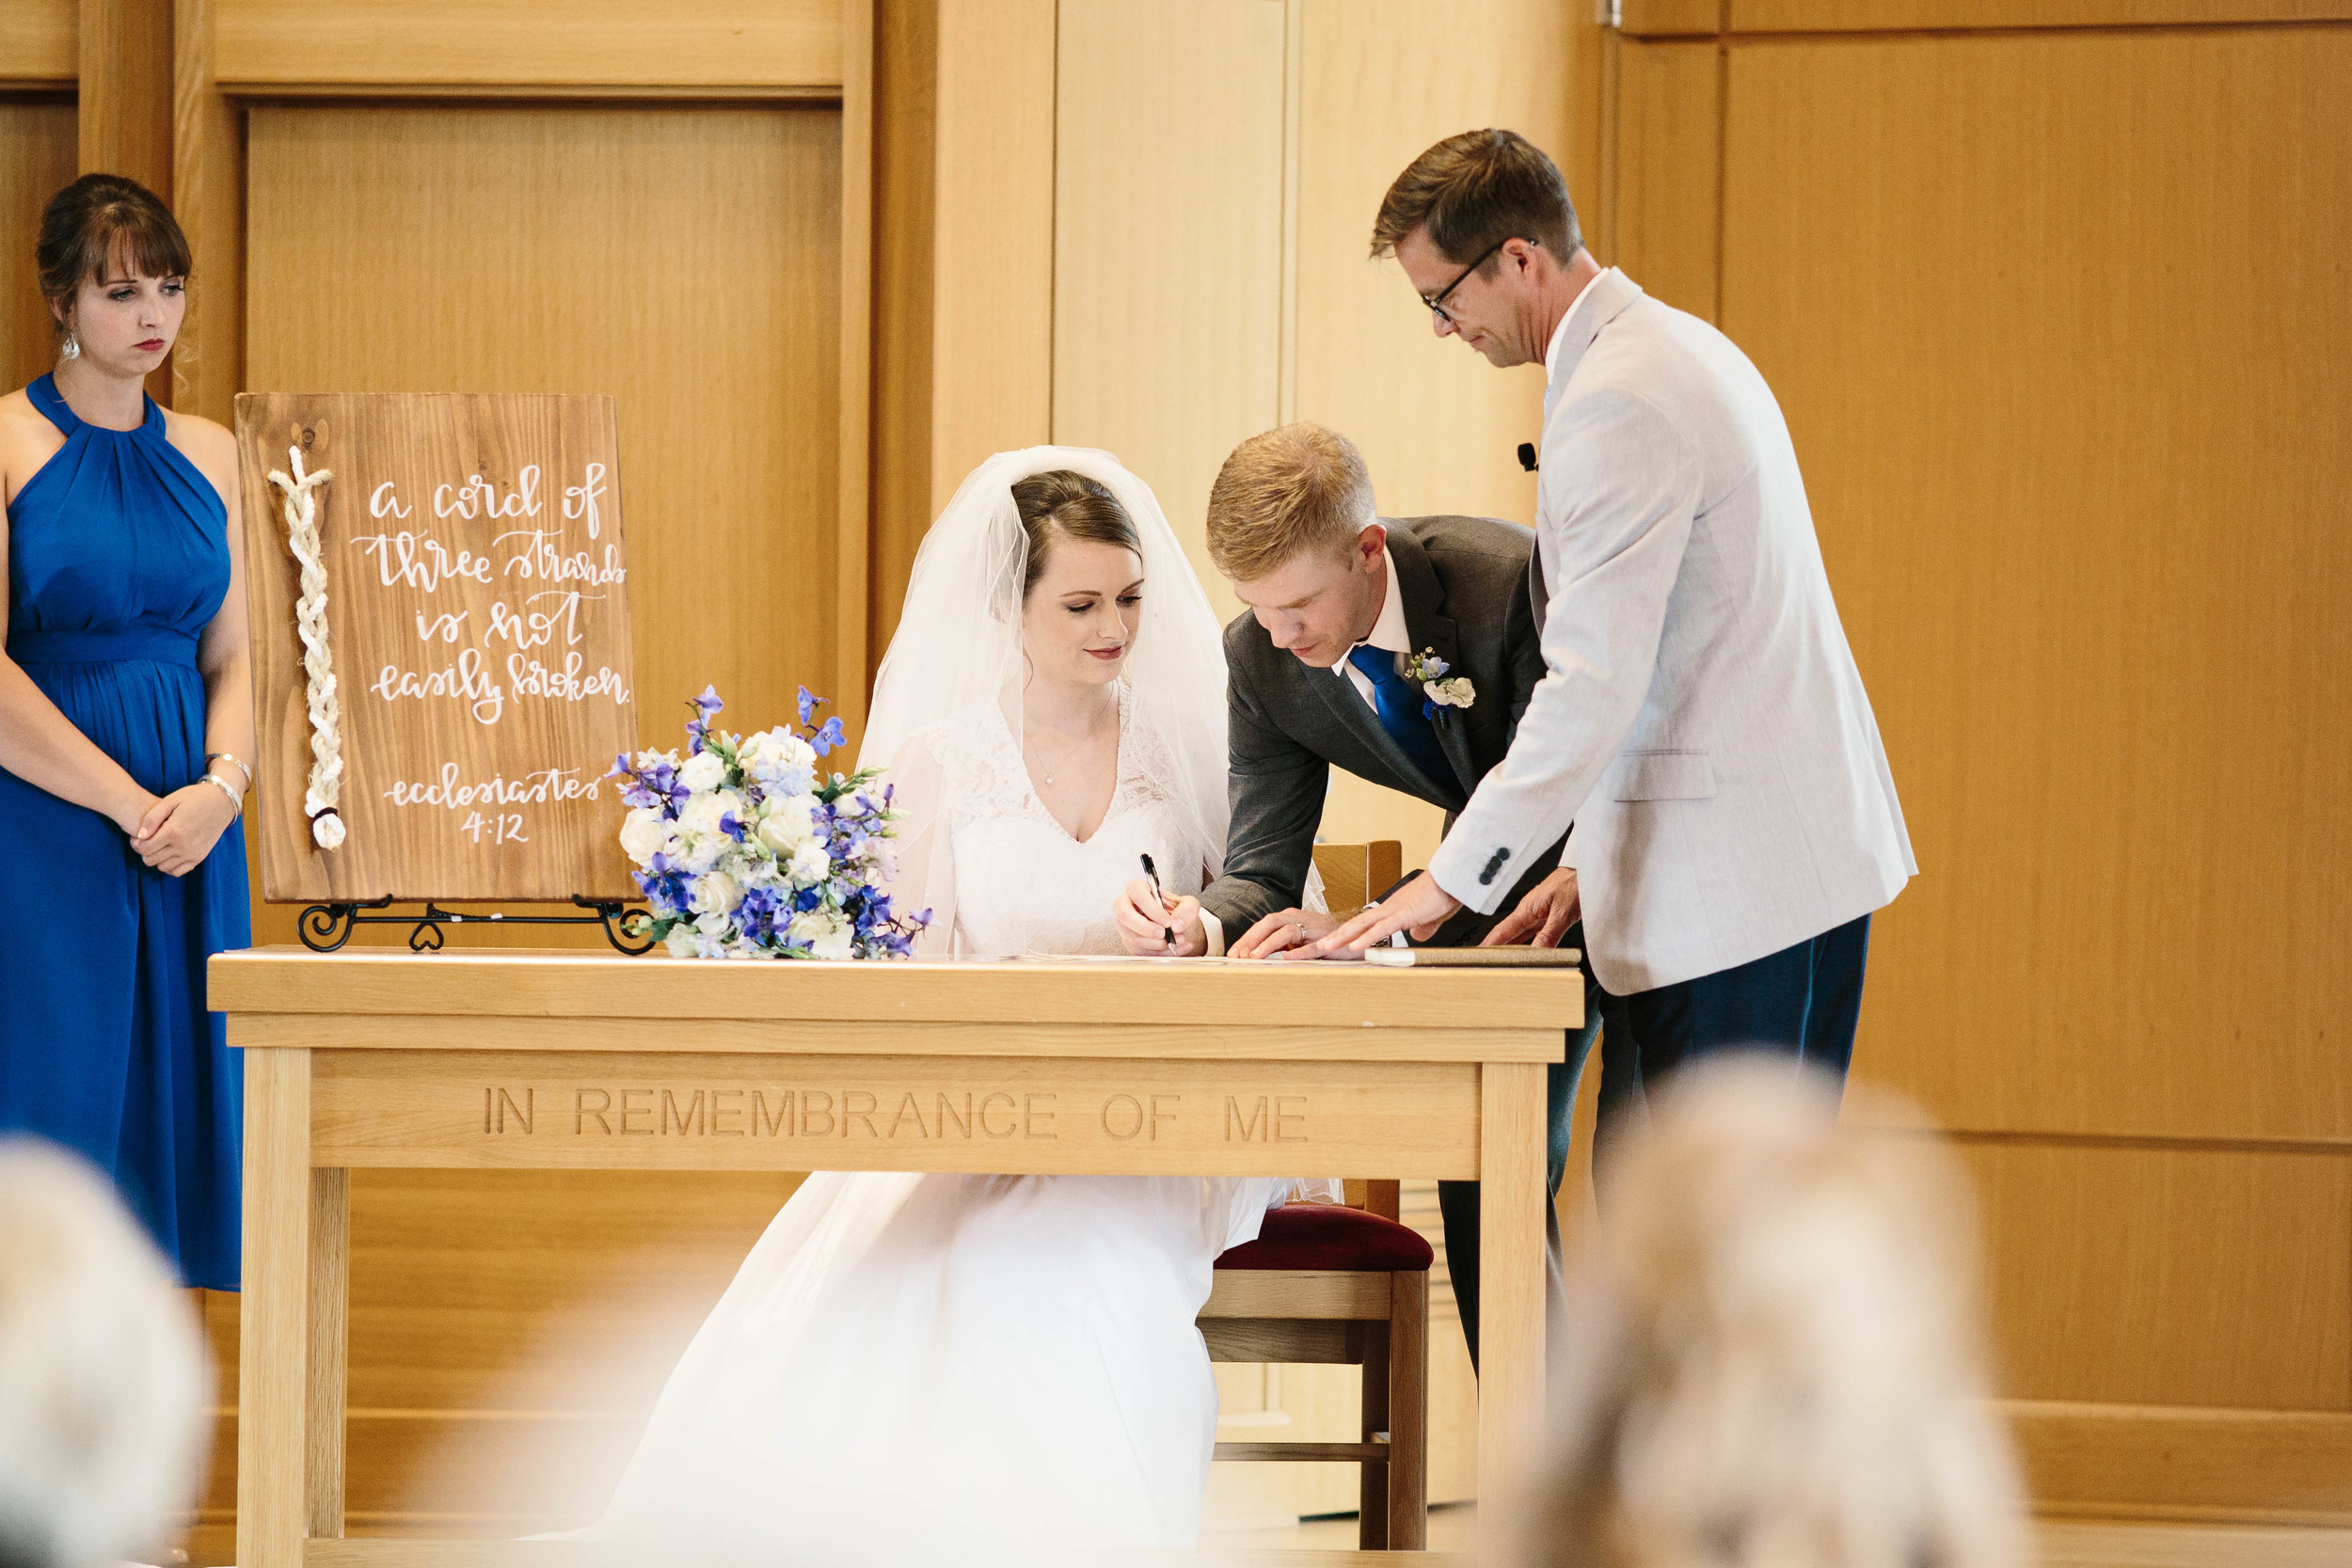 It's a Canadian tradition to sign the marriage license during the ceremony!